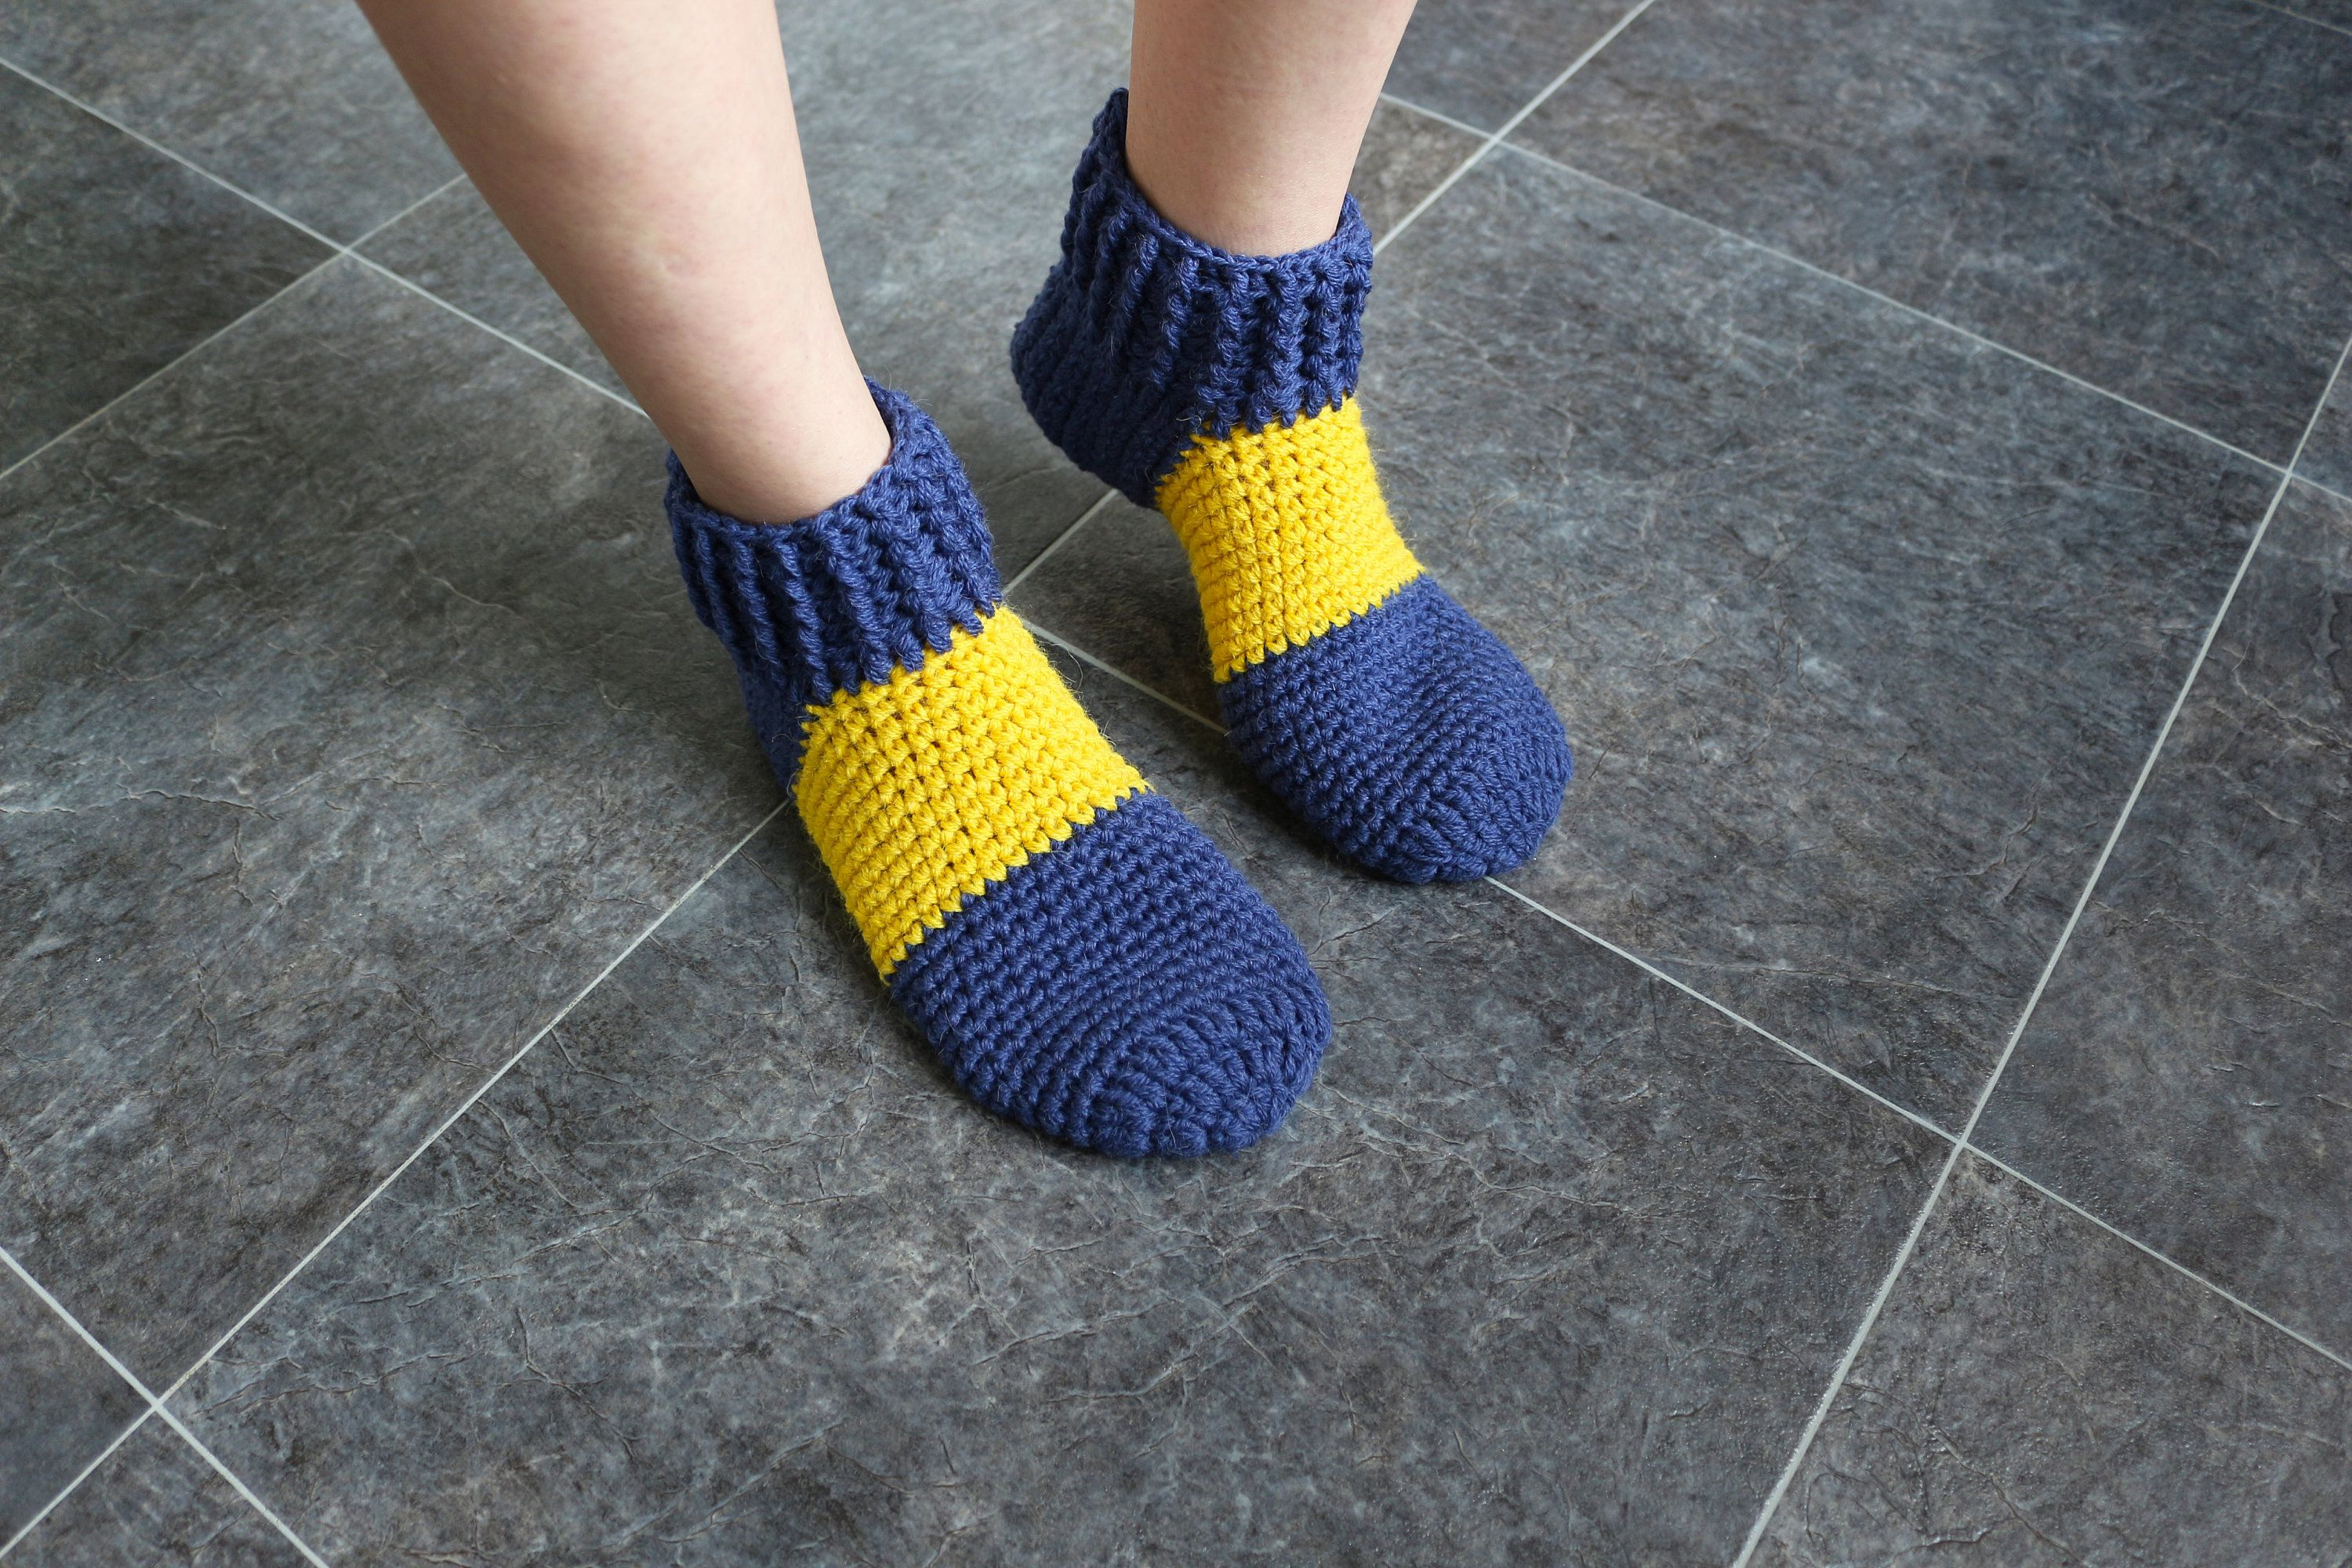 77a7c07be97 Adult booties Crochet slippers Pure wool Ladies slippers Knit wool socks  Yellow slippers Blue booties Warm indoor slippers Hand knitted sock